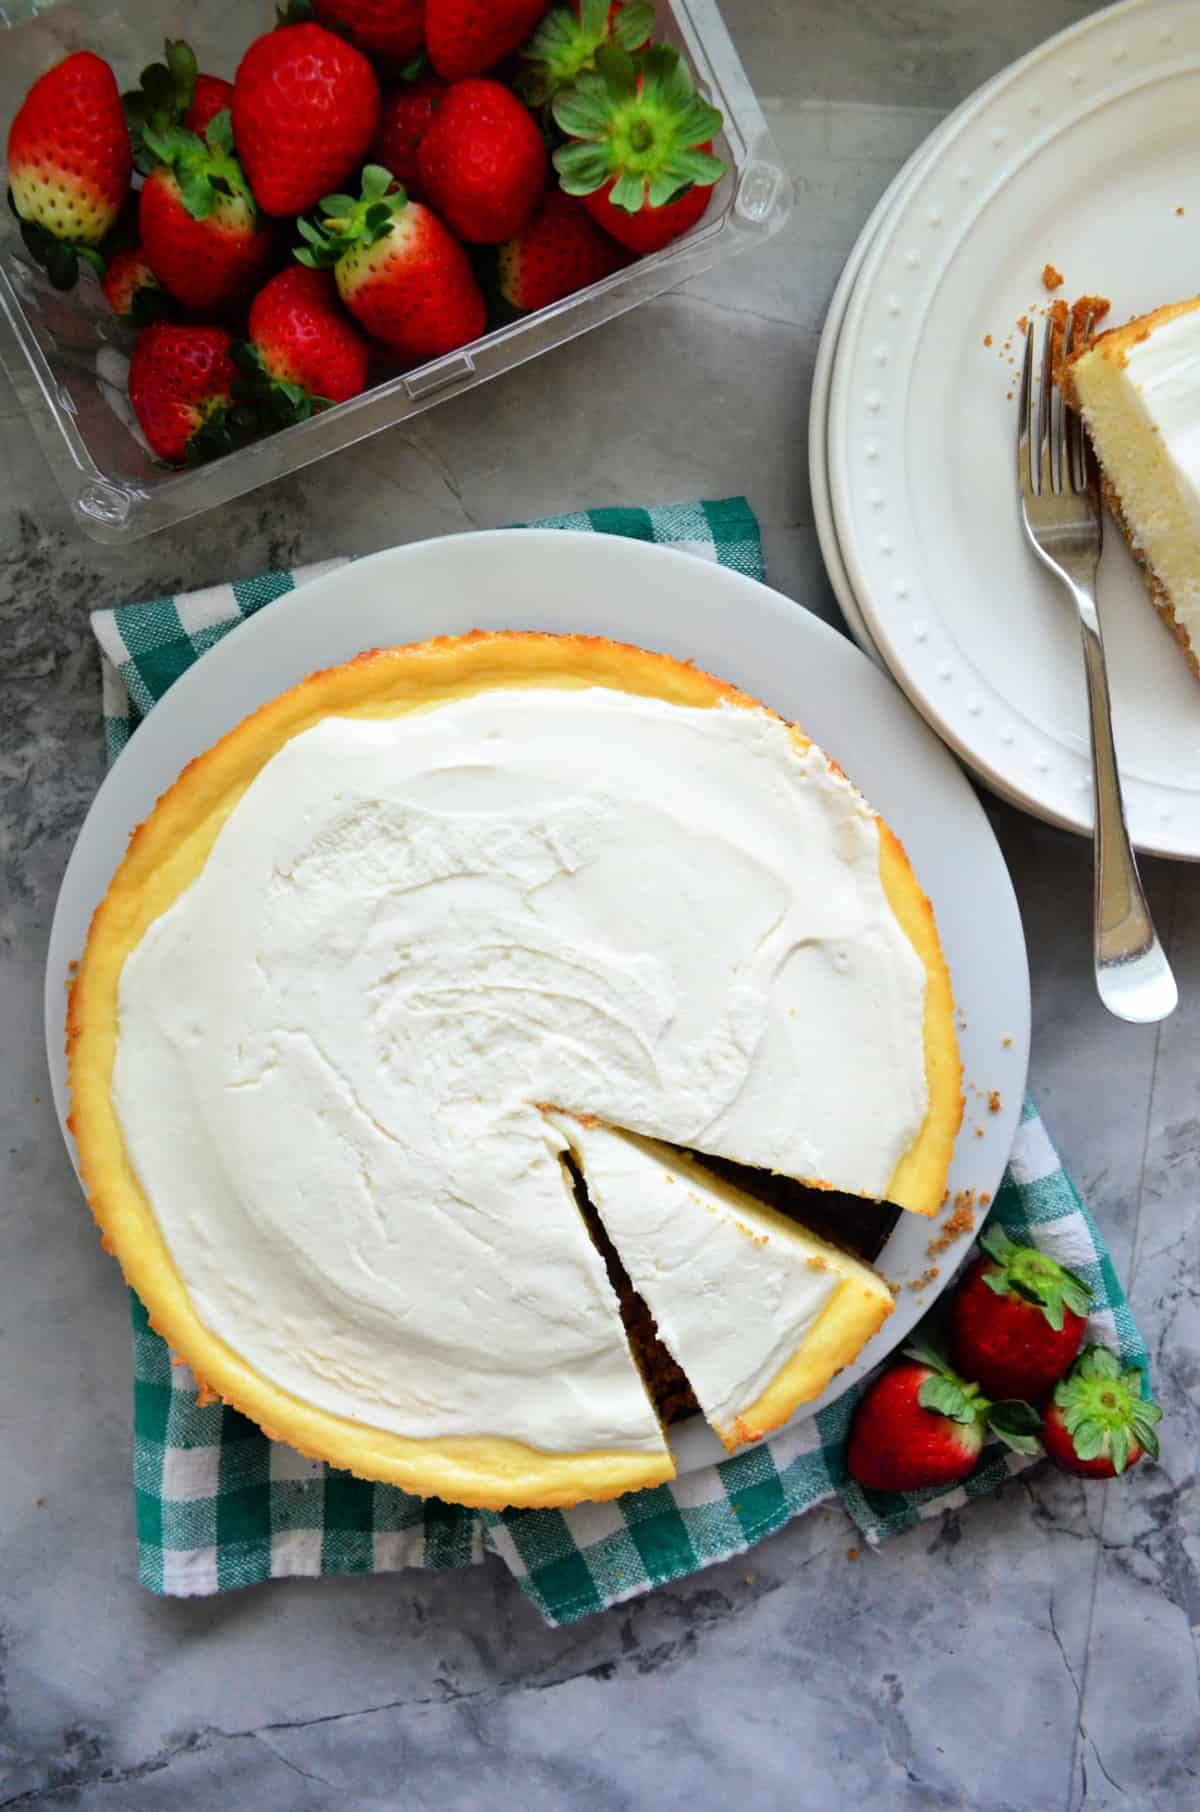 Top view of a sliced plain cheesecake with fresh strawberries on the side.